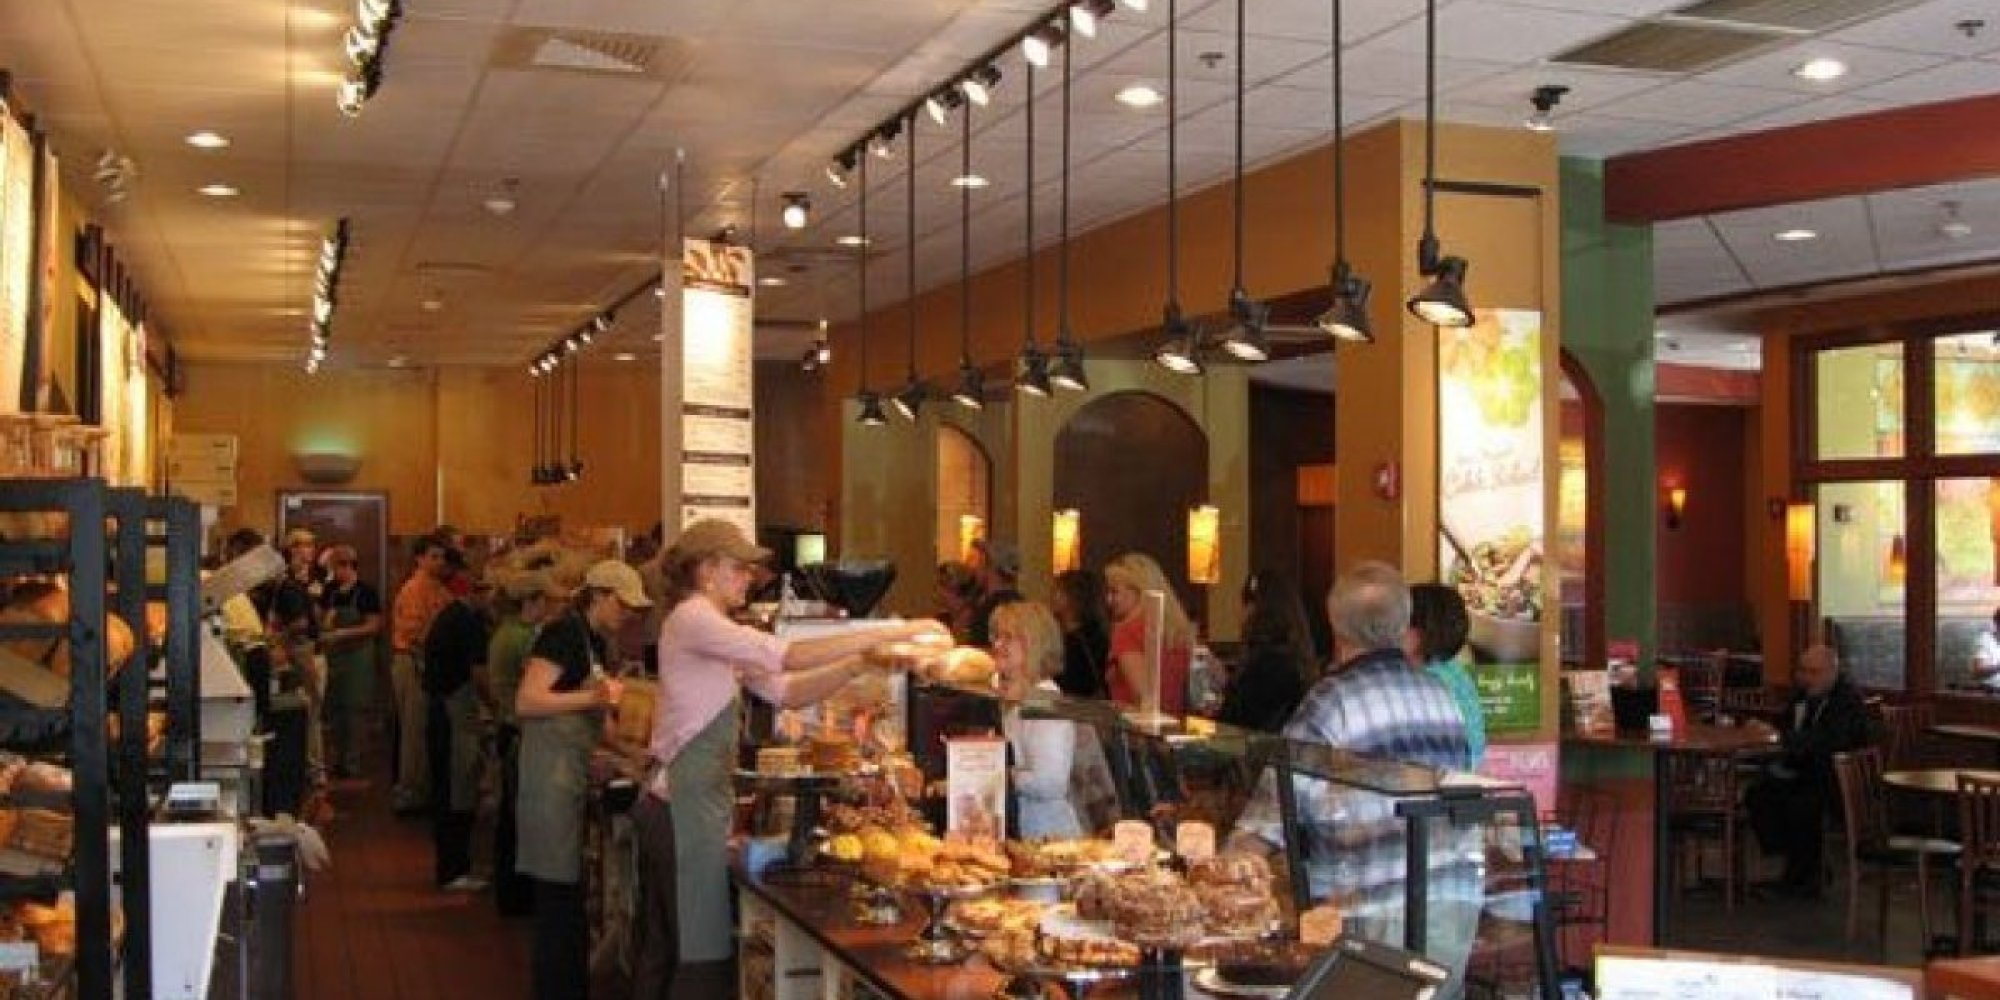 5 Things You Didn't Know About the Panera Bread Chain | HuffPost